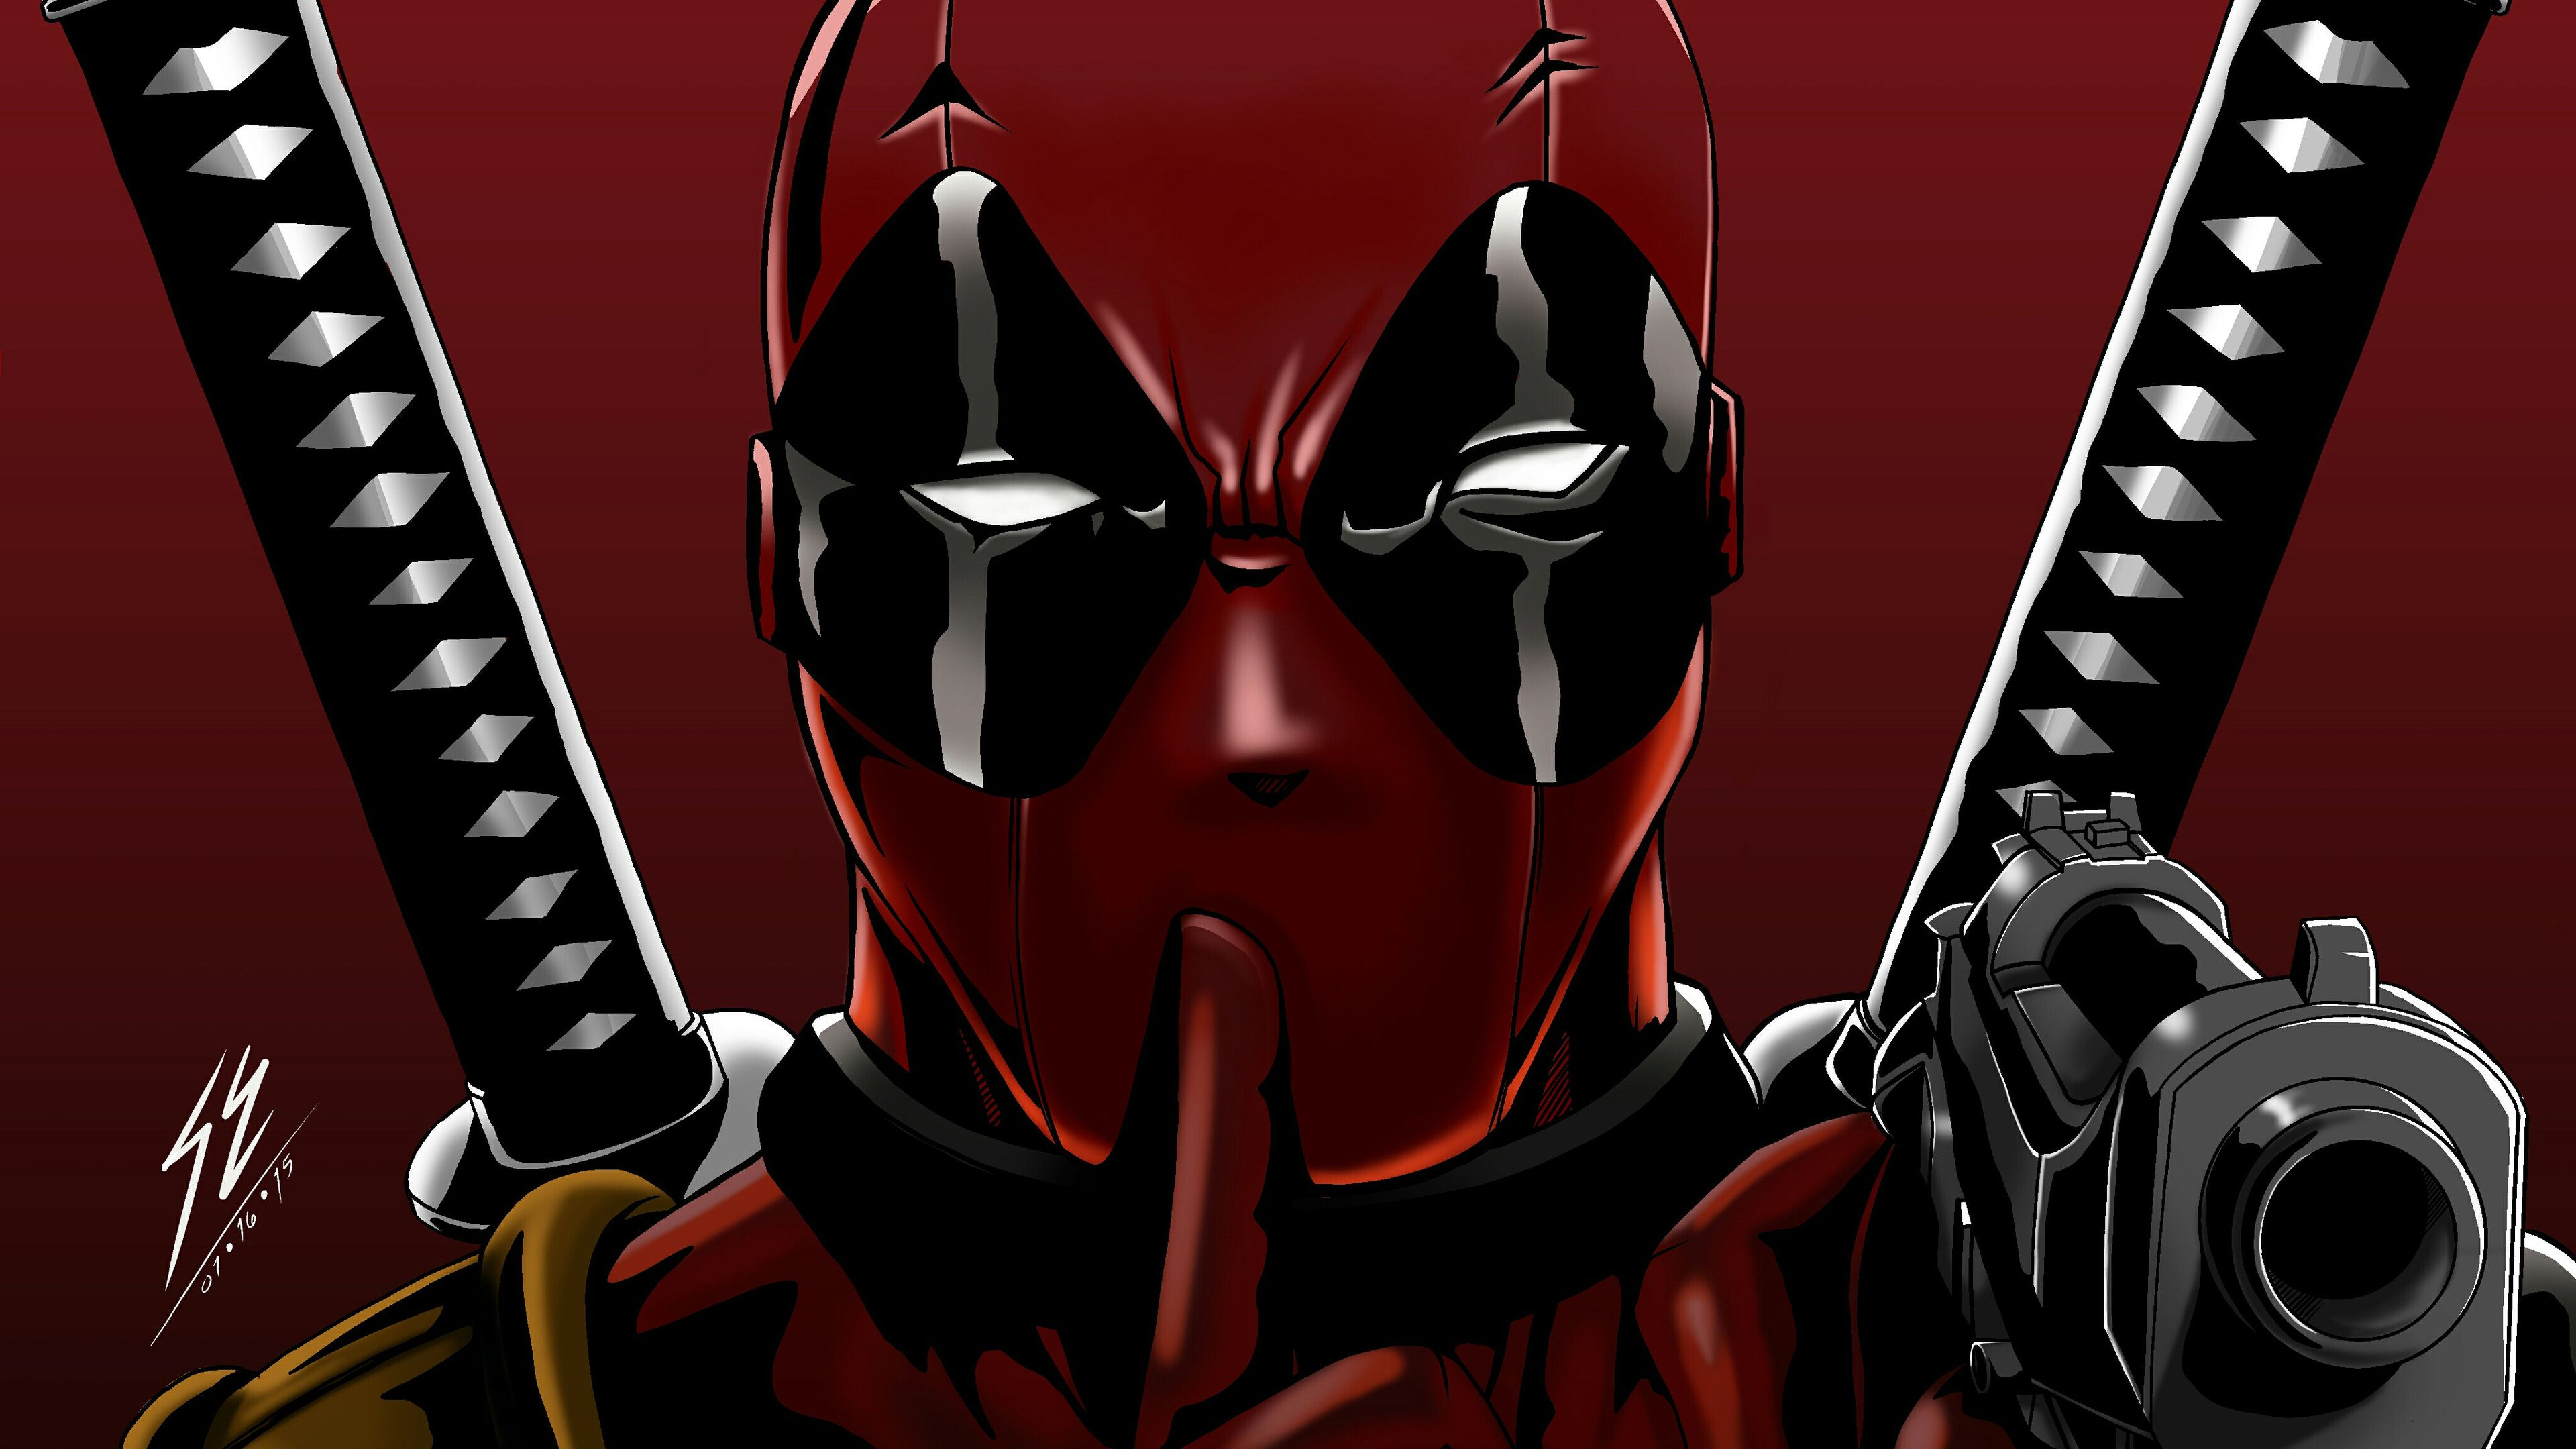 Deadpool Digital Arts 4k Superheroes Wallpapers Hd Wallpapers Digital Art Wallpapers Deviantart Wallpapers Dea Deadpool Wallpaper Art Wallpaper Digital Art